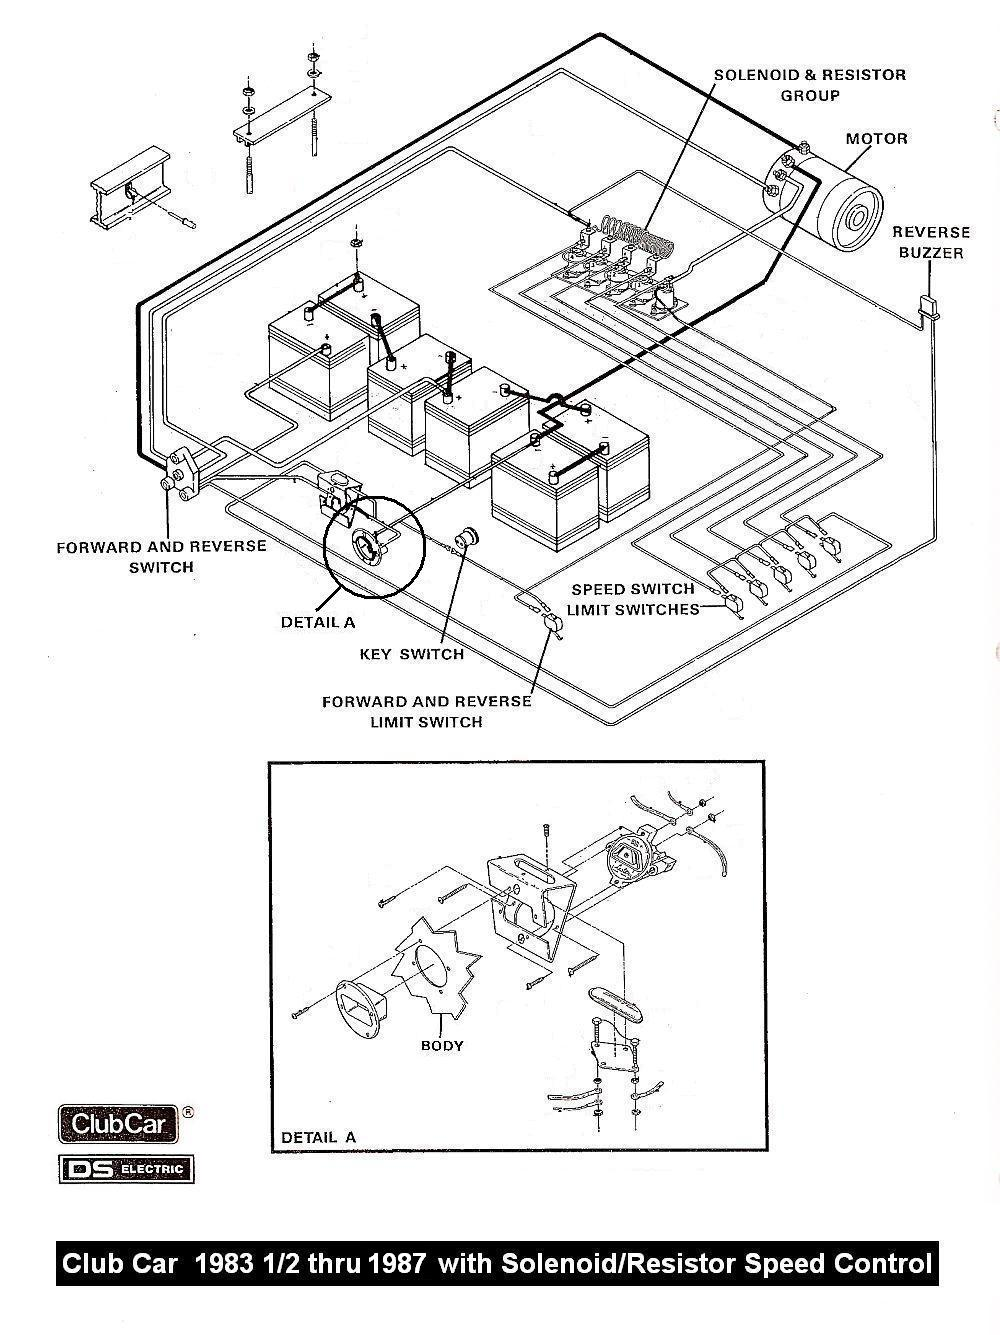 wiring diagram for a vintage golf with Vintagegolfcartparts   Gallery Categories Club Car Club Car Wiring Diagrams Media Cc 83 87 Solenoid Wiring on 88 Ezgo Wiring Diagram together with Ez Go Golf Carts 1994 Wiring Diagram additionally Harley Davidson Golf Cart Voltage Regulator Wiring Diagrams in addition Engine and jet drive as well Vintagegolfcartparts   gallery categories Club Car Club Car Wiring Diagrams media CC 83 87 solenoid wiring.